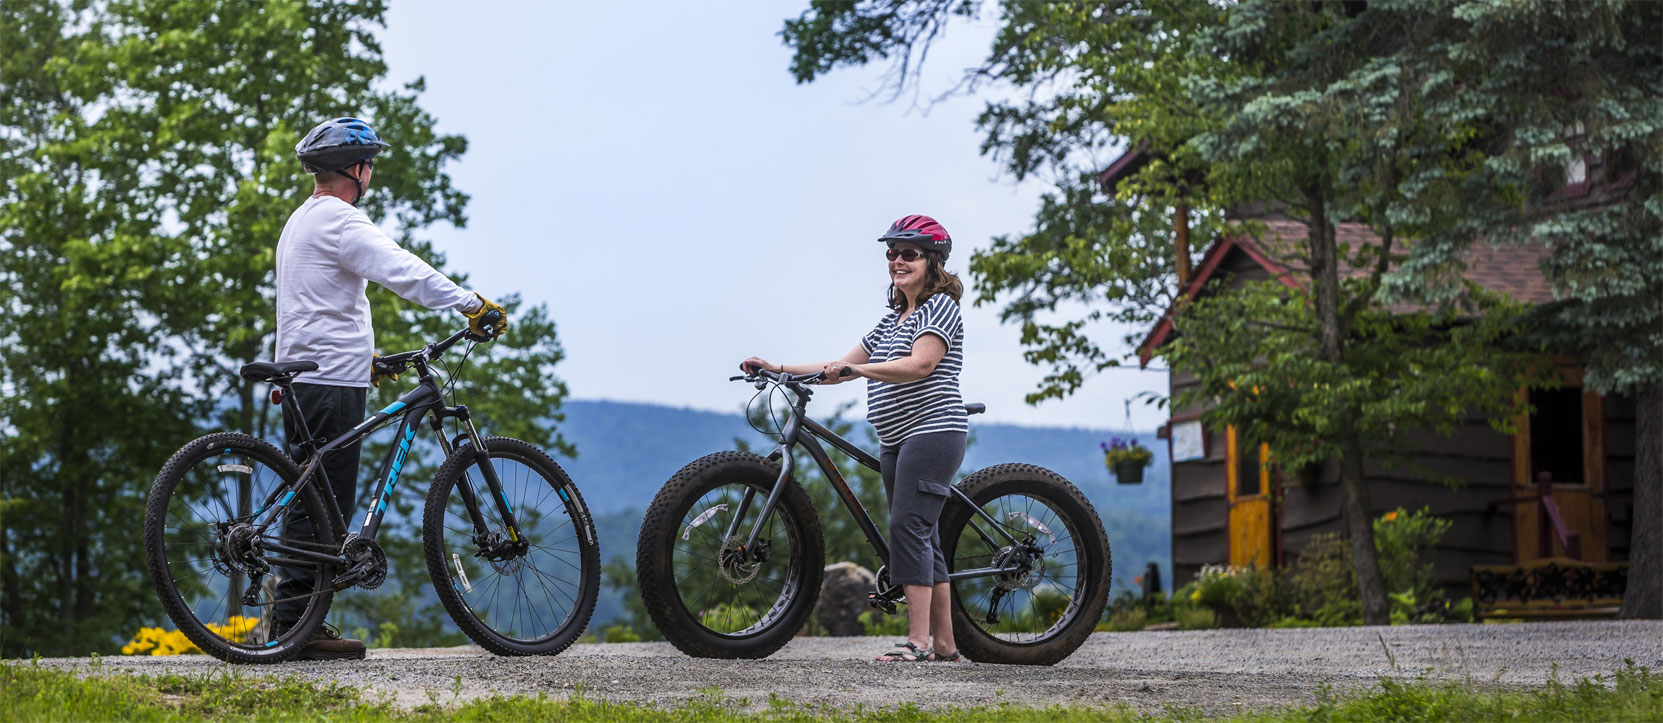 Mountain bike trails and rentals